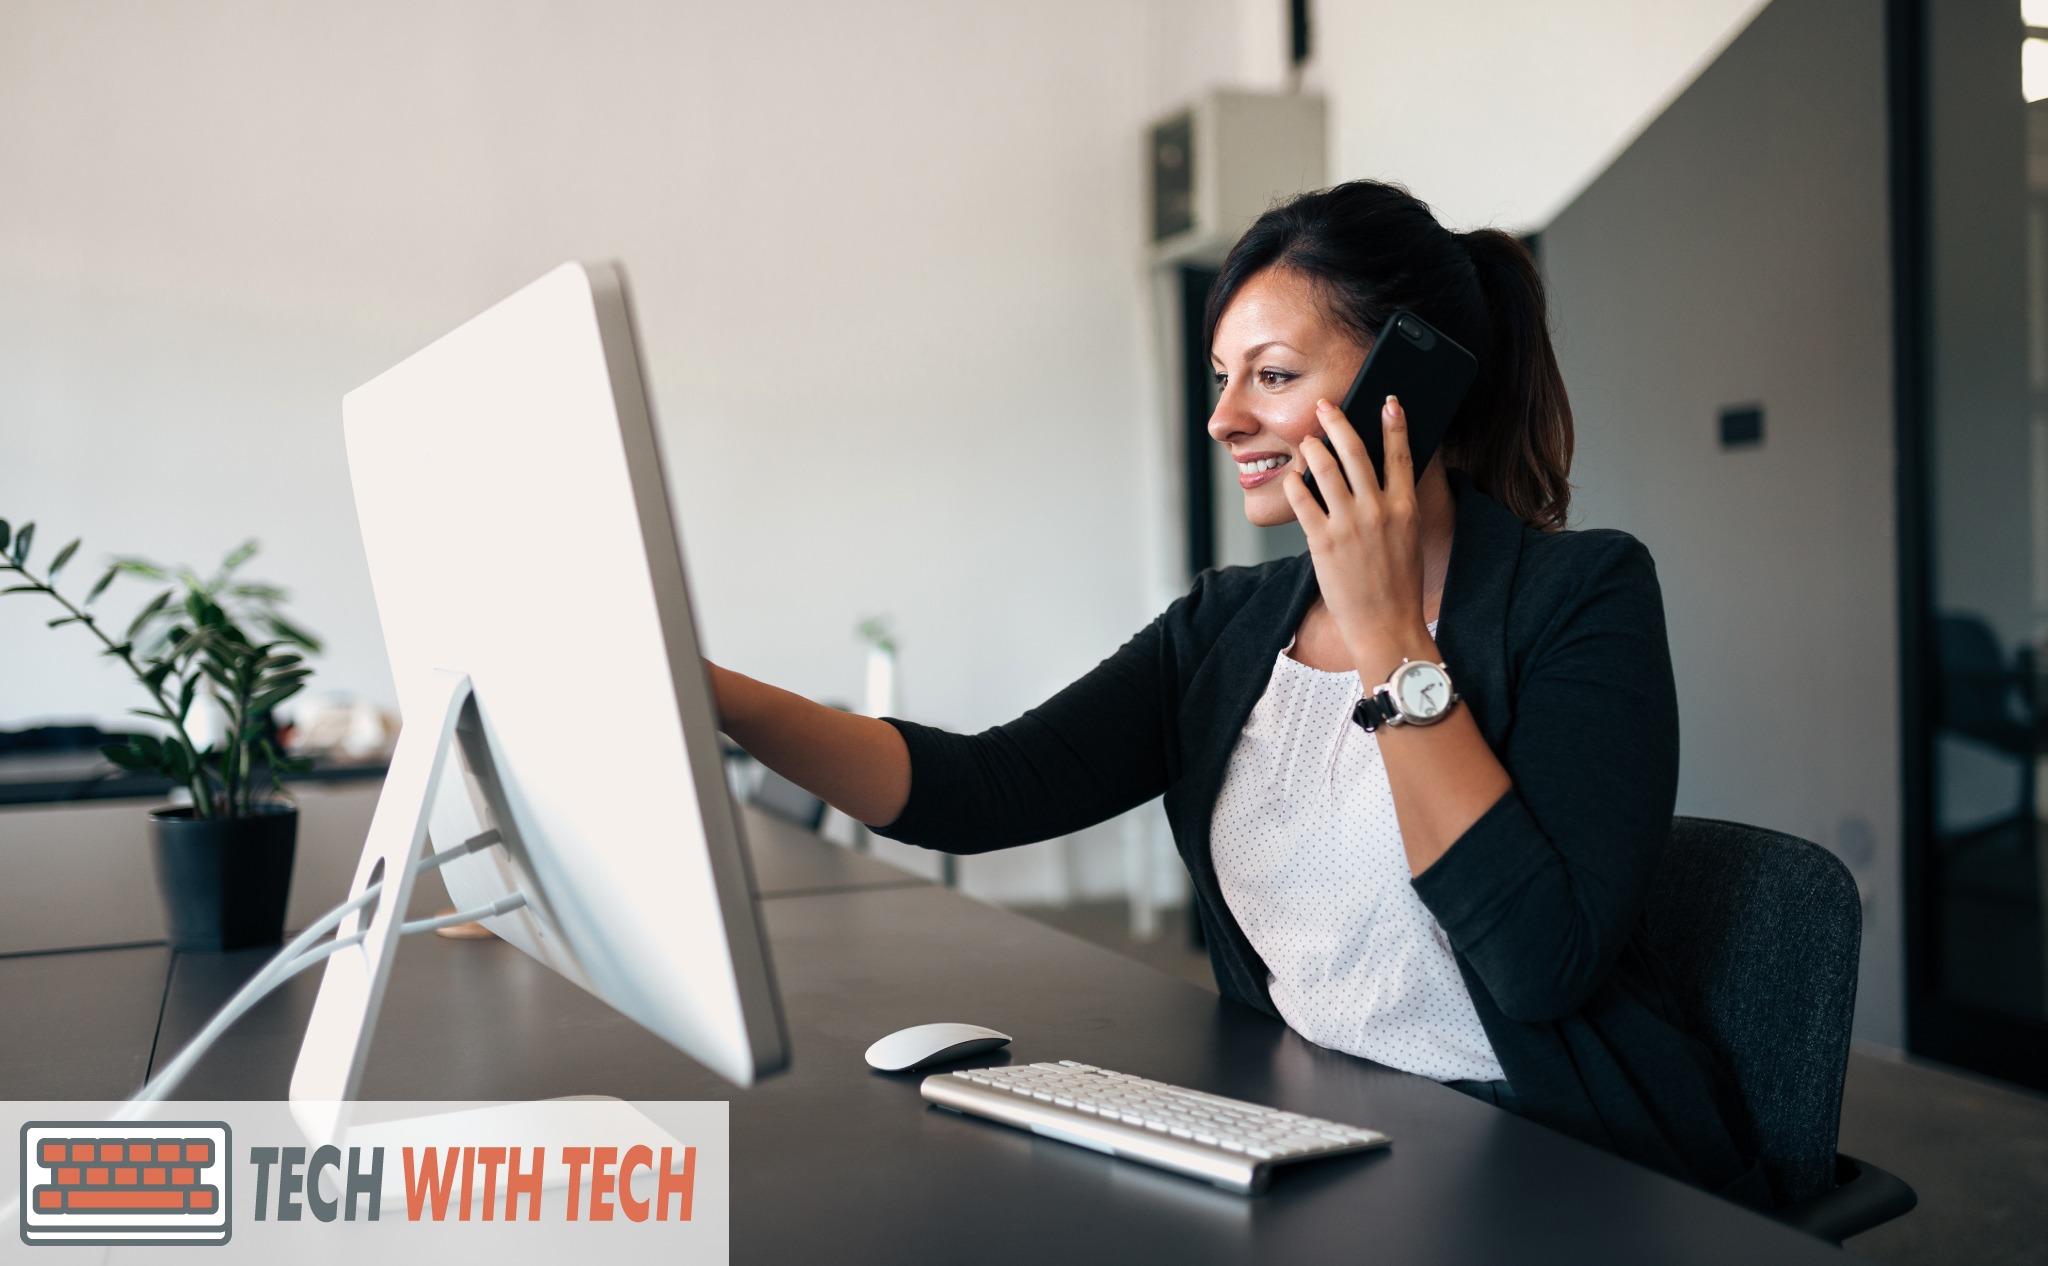 What Is an ICT (Information and Communications Technology) Manager?